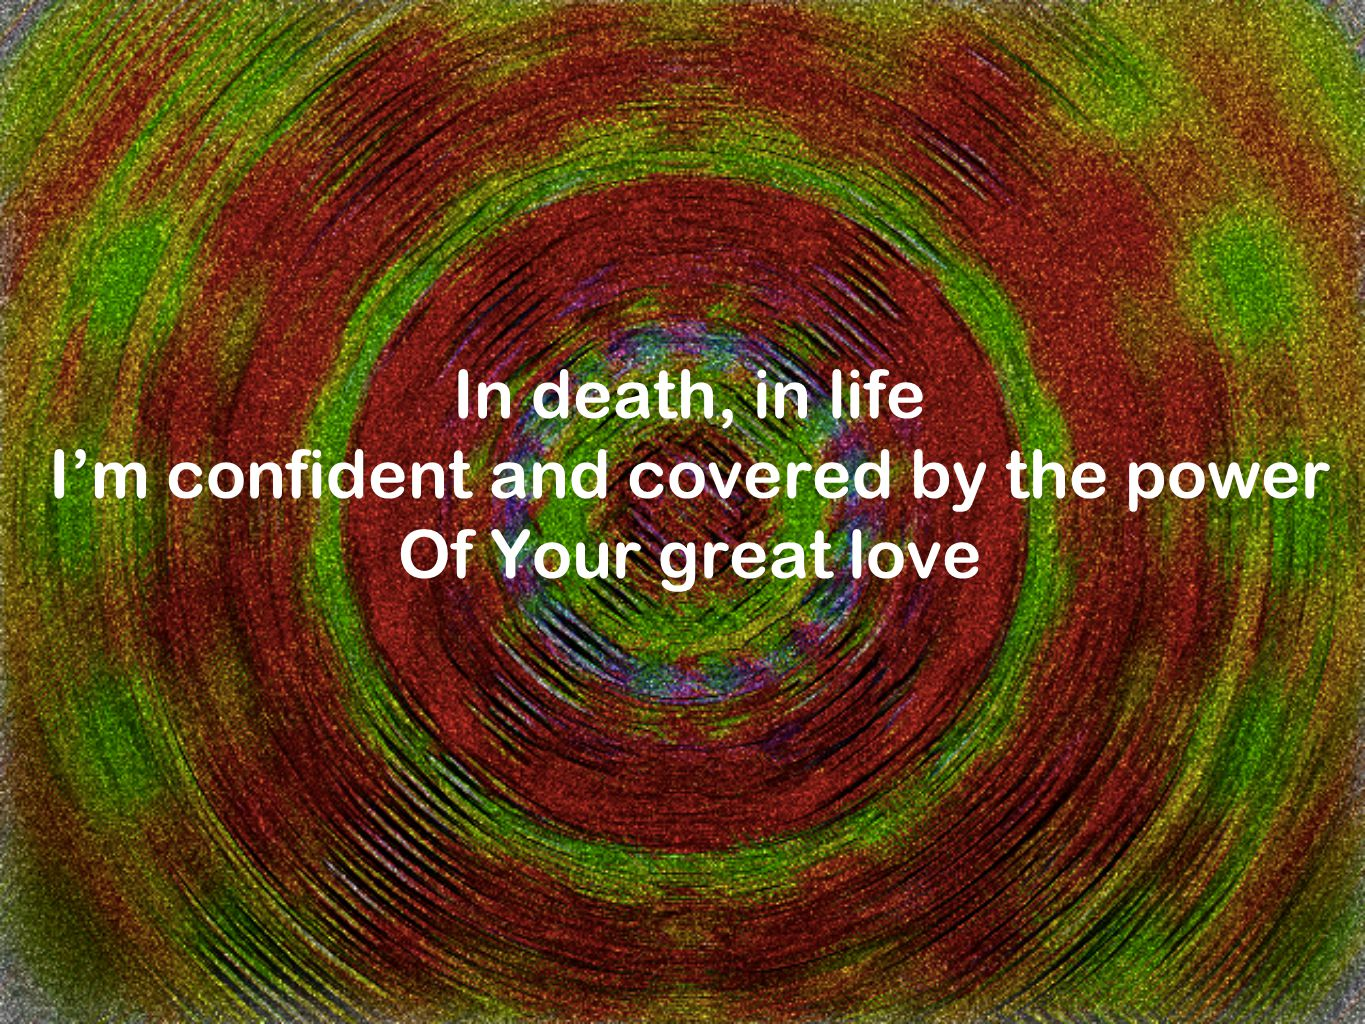 In death, in life I'm confident and covered by the power Of Your great love